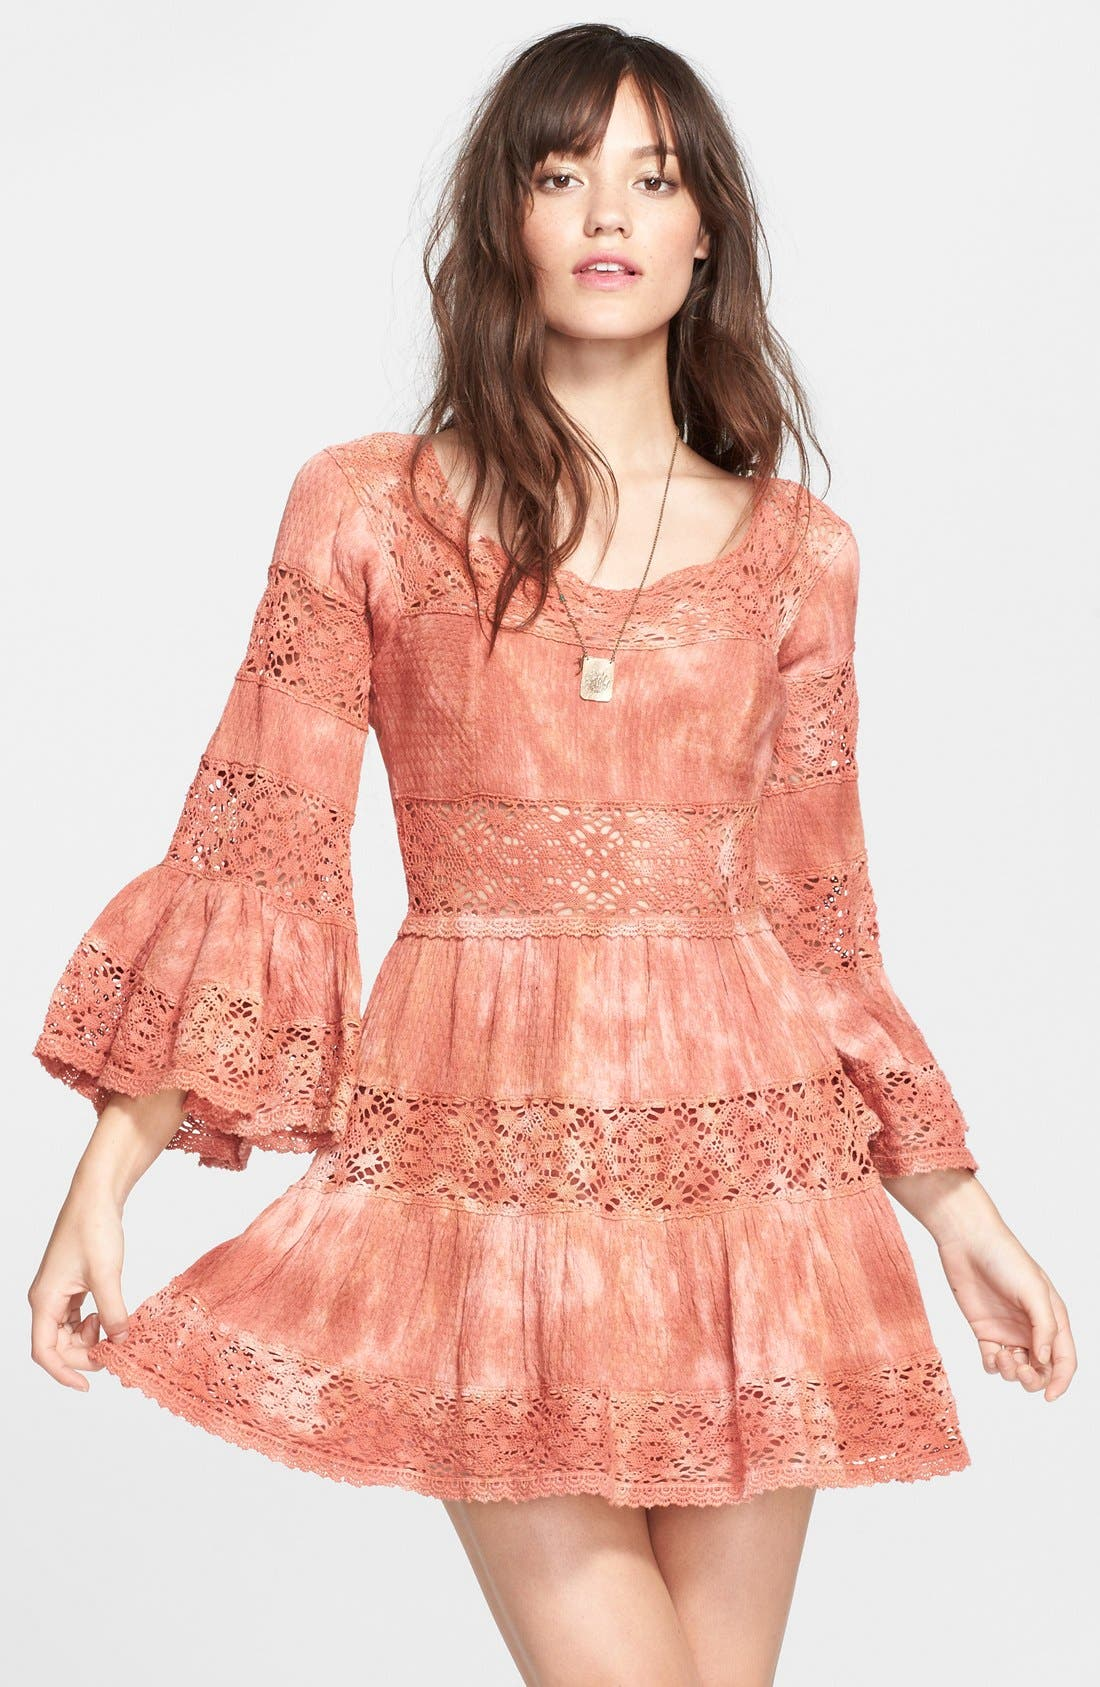 FREE PEOPLE, 'Pippa' Gauze Fit & Flare Dress, Main thumbnail 1, color, 800